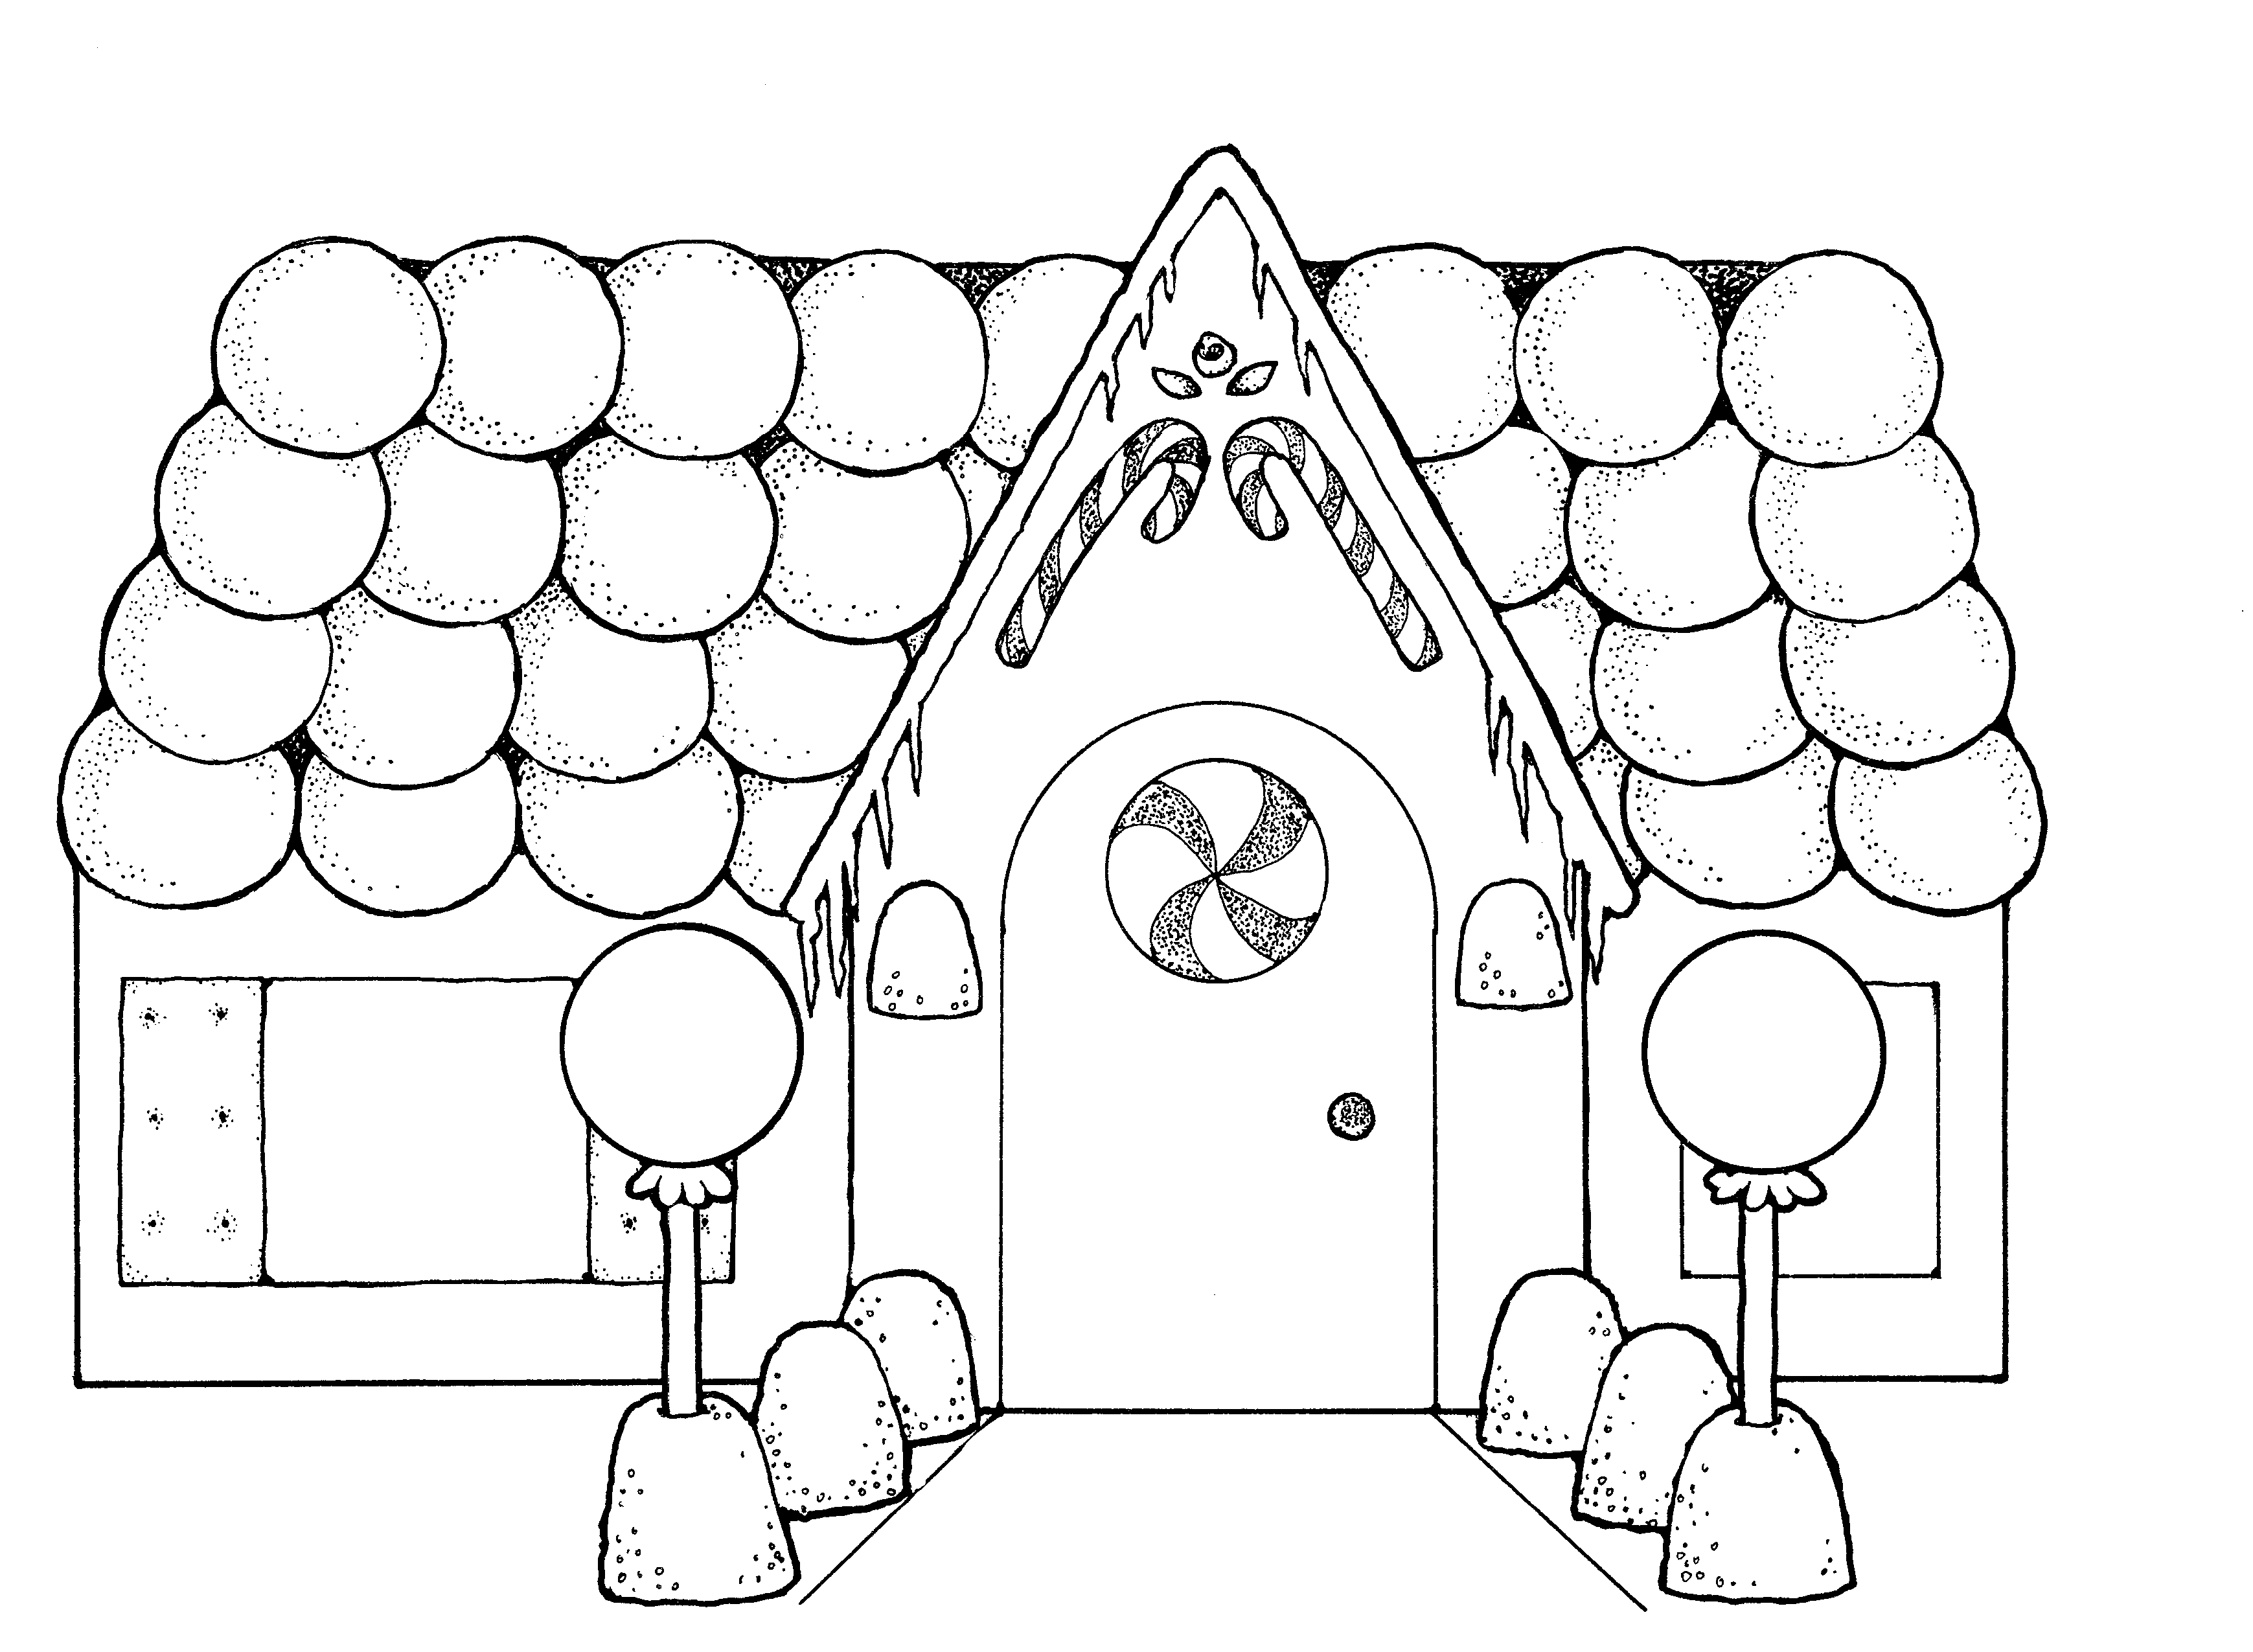 Gingerbread house cliparting com. Free clipart printable black and white line art houses